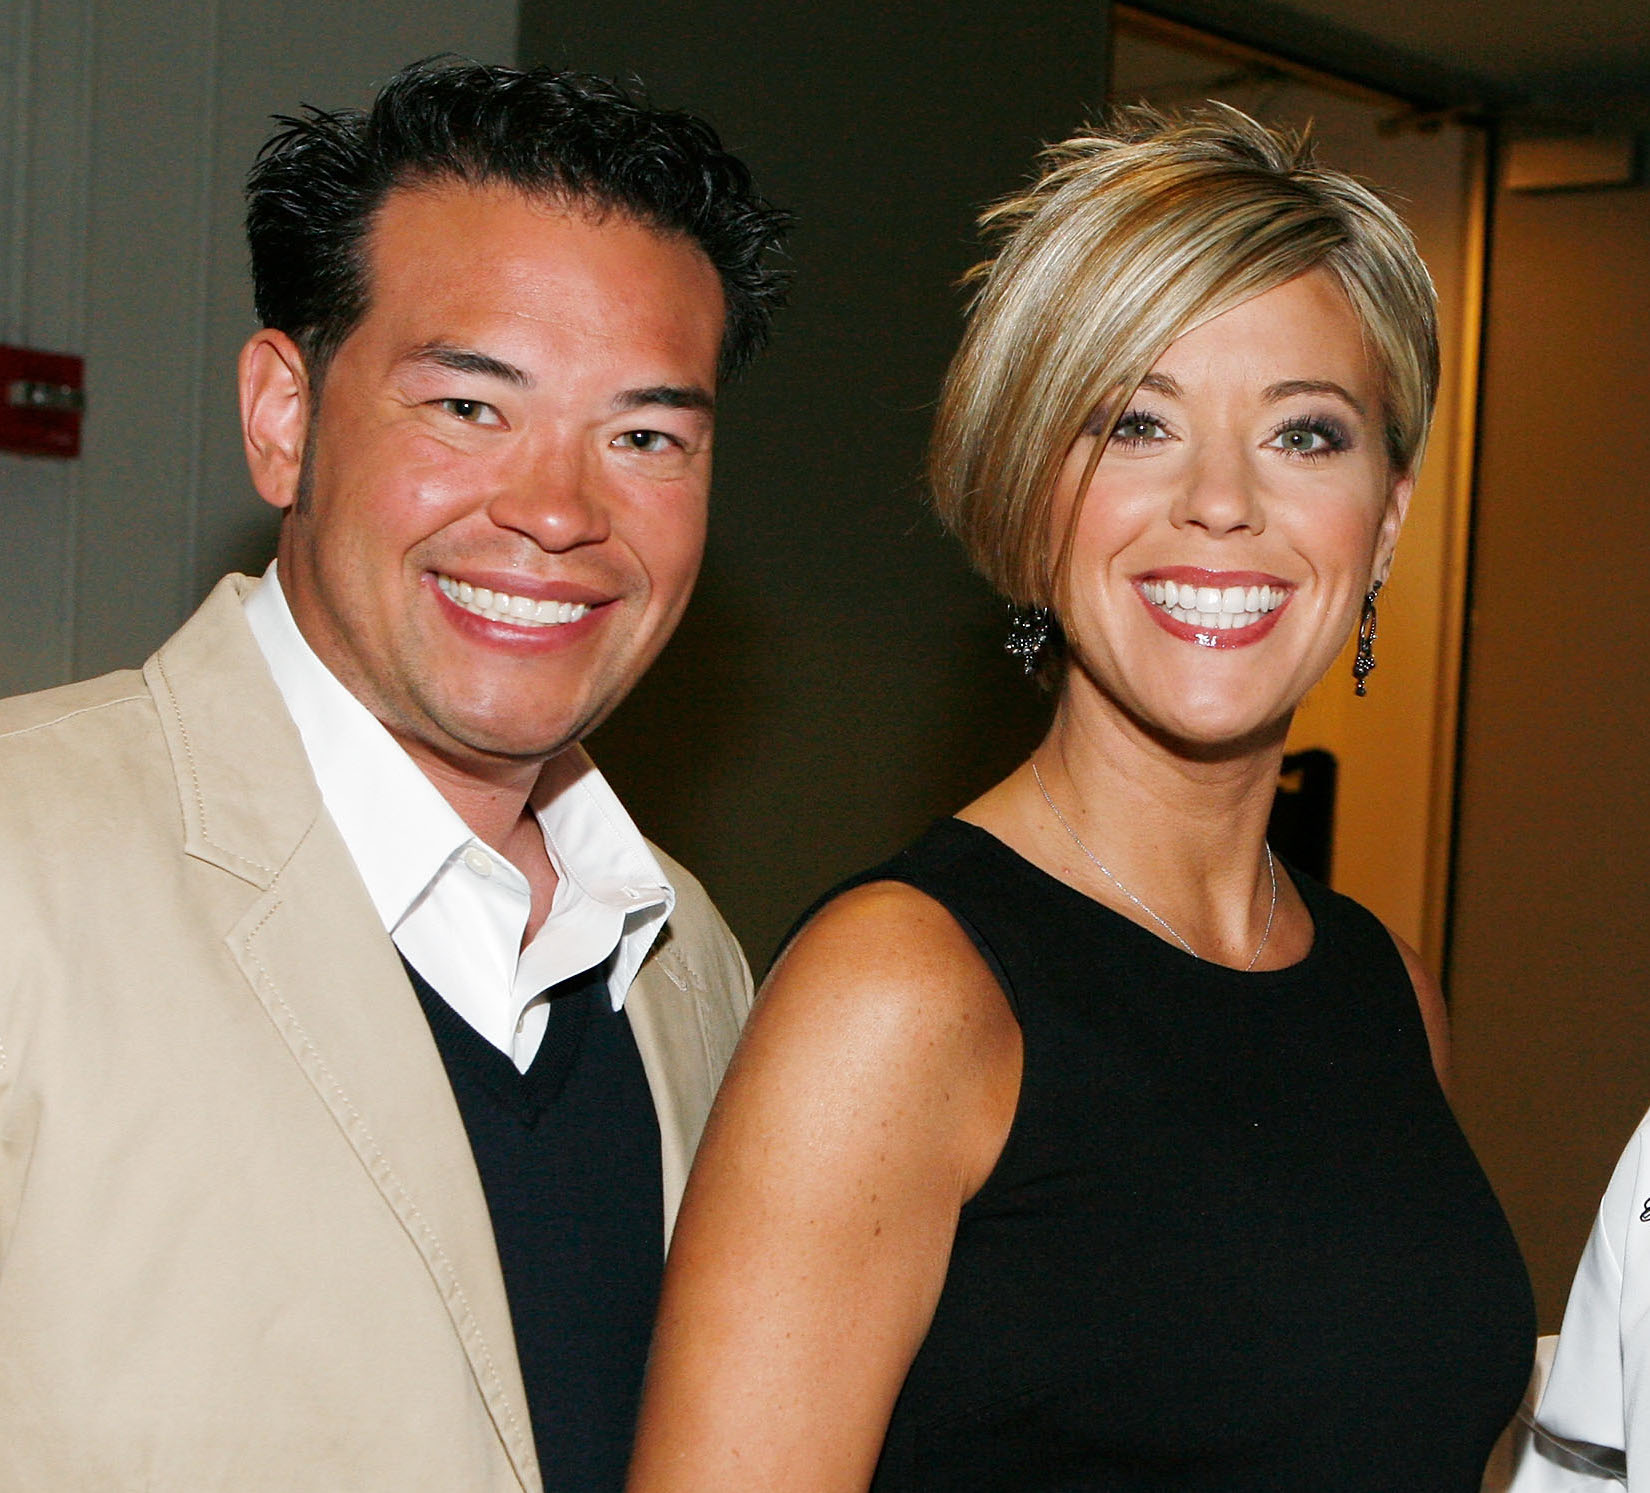 Kate Gosselin's Ex Jeff Prescott Slams Her Claims They Never Dated